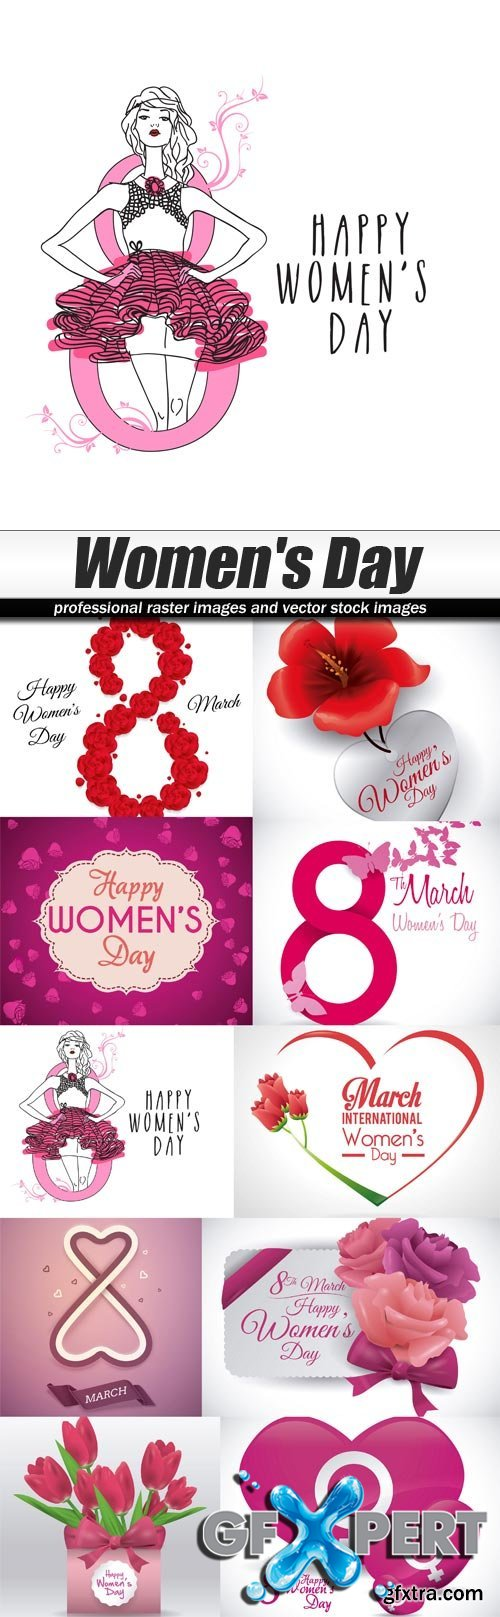 Women's Day - Stock Vector